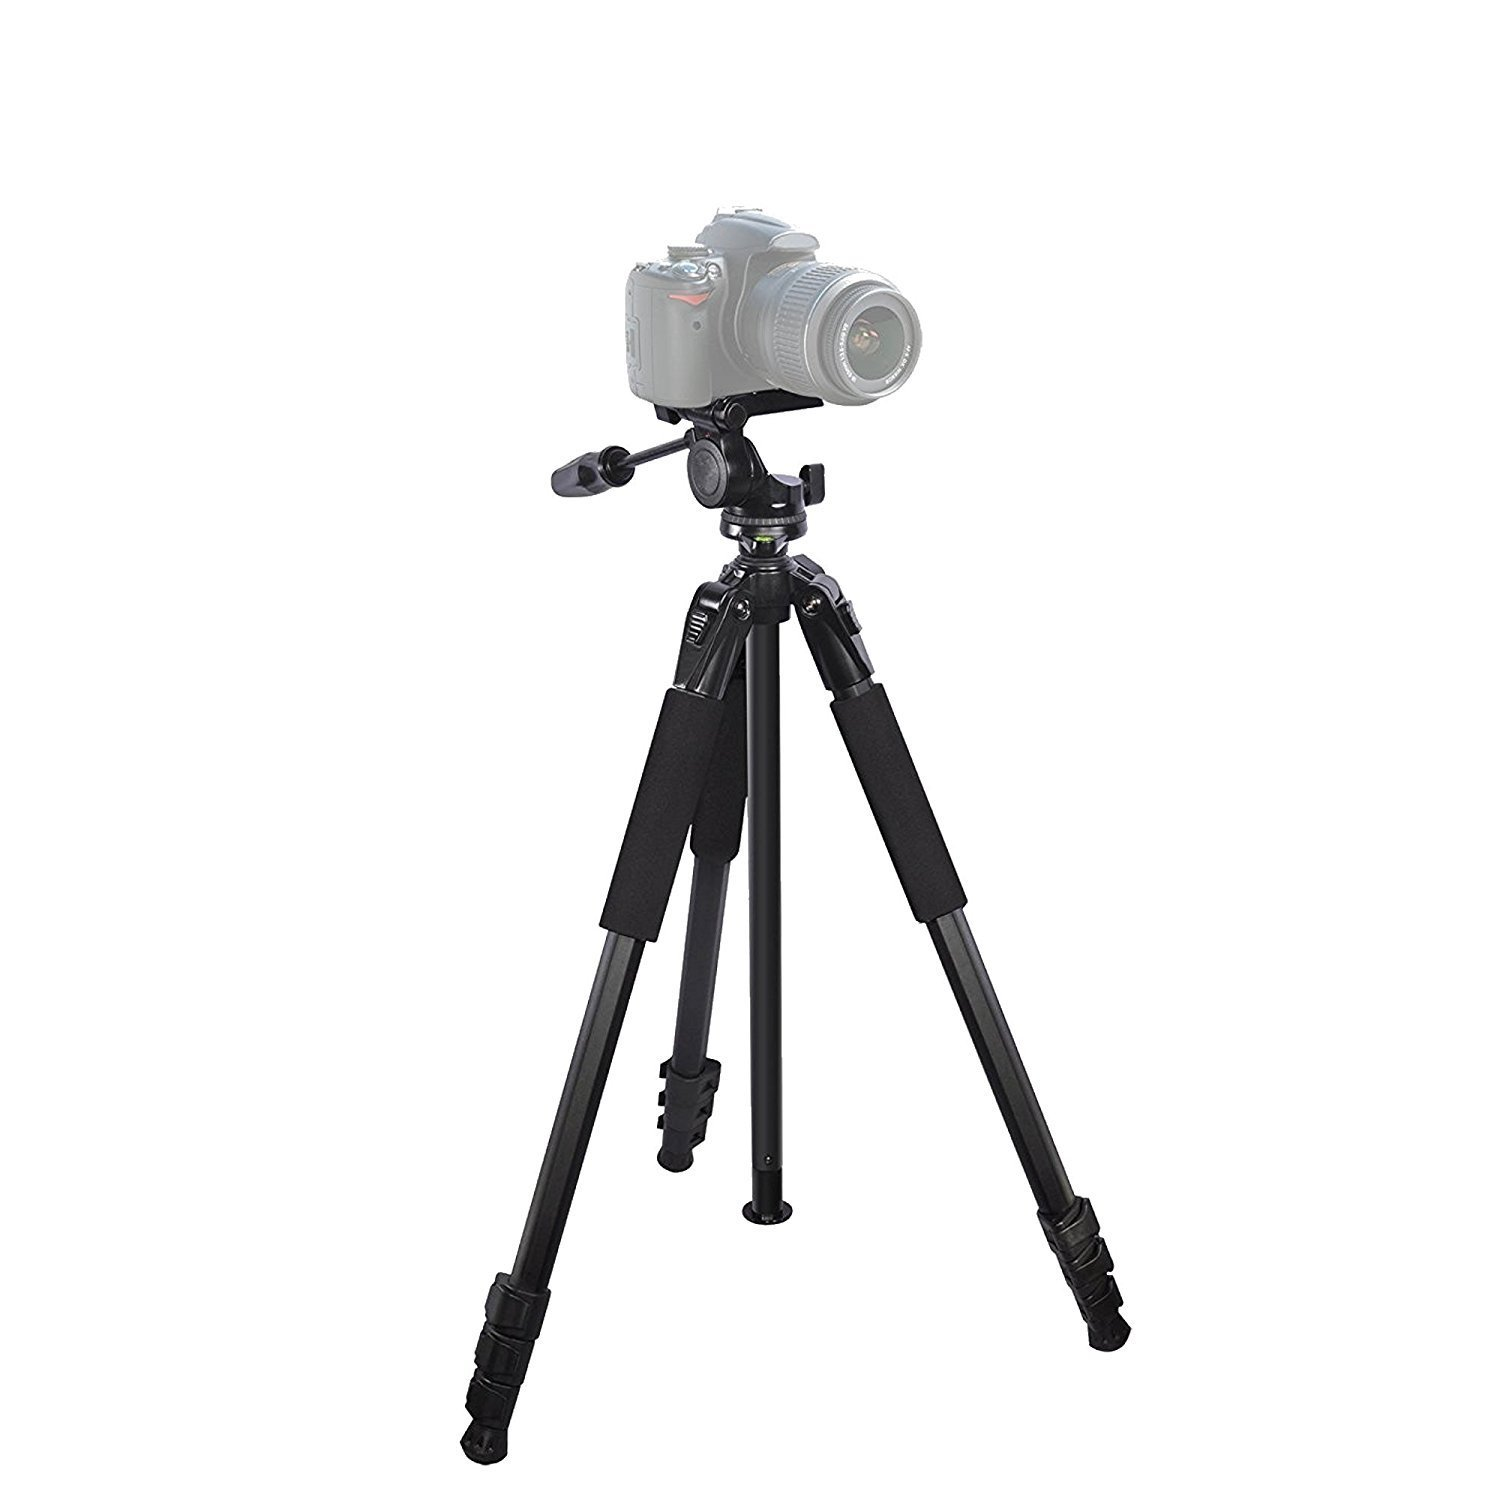 Durable 80'' Portable tripod for : Canon PowerShot A2000 IS CameraTripod - 360 Degree Pan, Tilt + Quick Release, Vertical Leg Adjustments, (2) Bubble Level Indicators + Durable Carry Case by iSnapPhoto